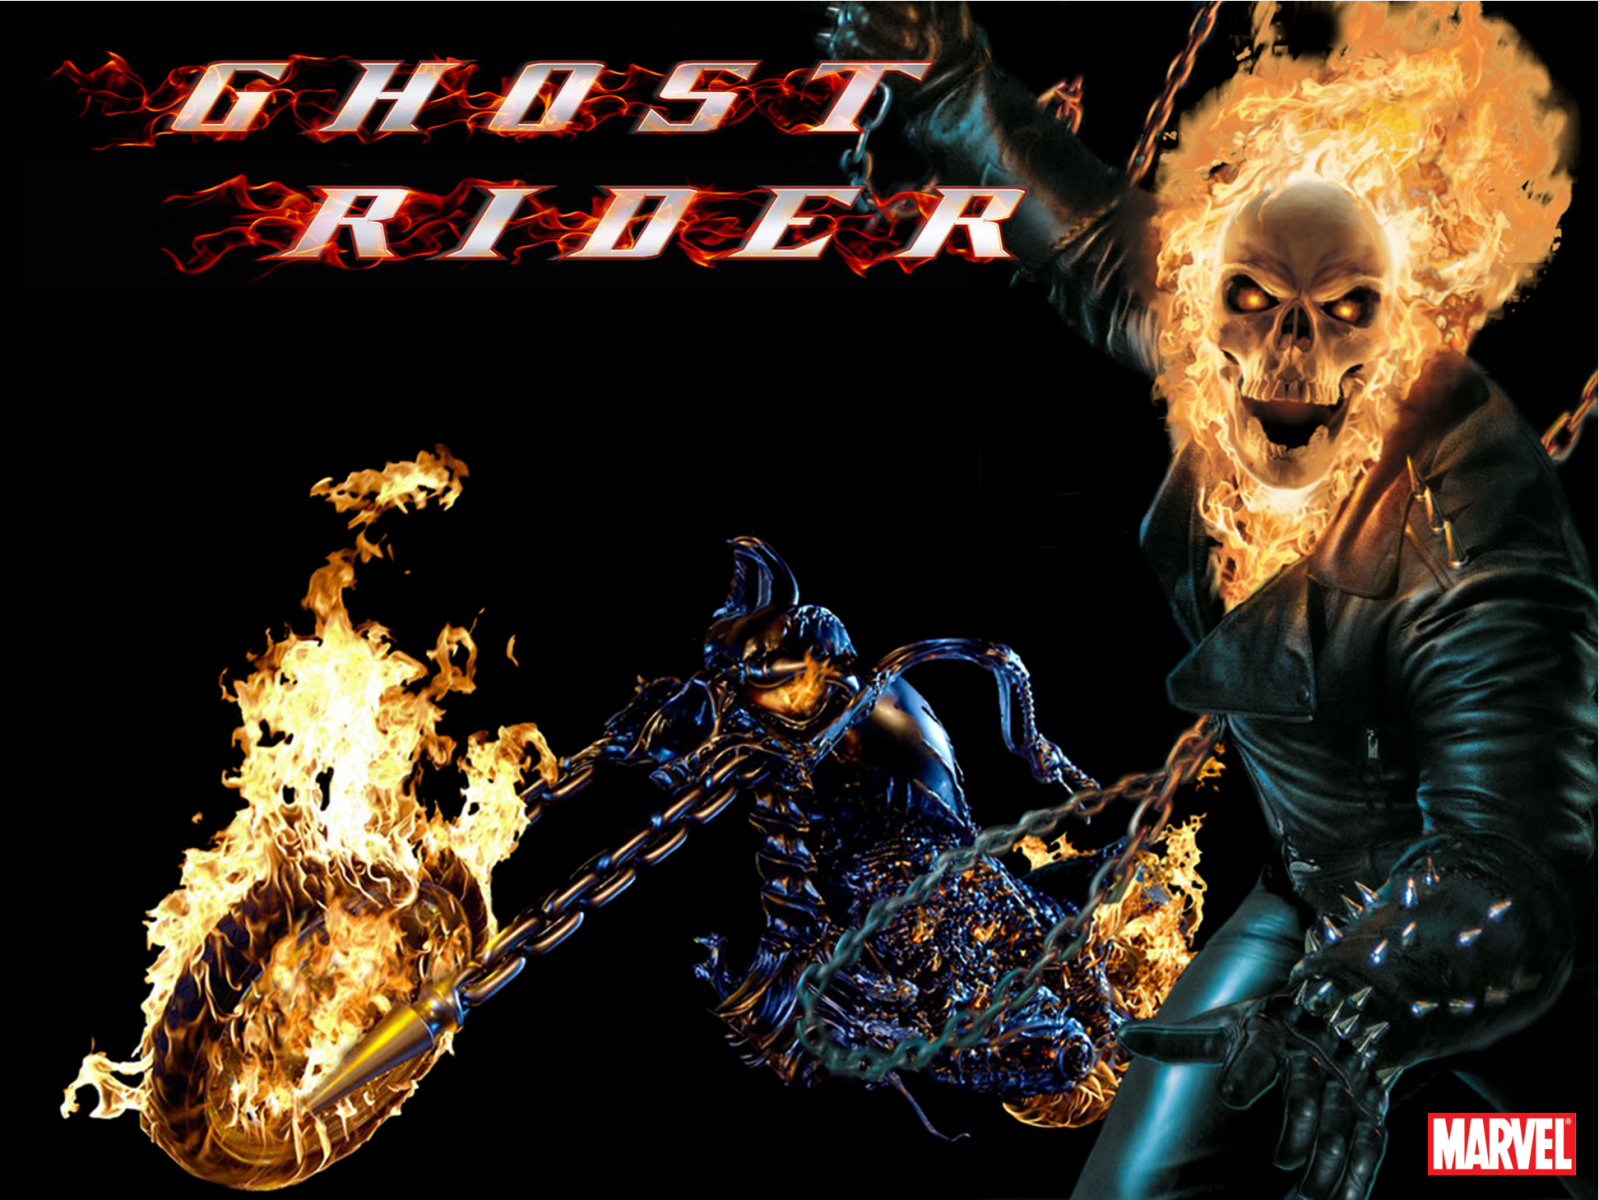 Ghost Rider Wallpaper In 3d Download Wallpaper DaWallpaperz 1599x1200